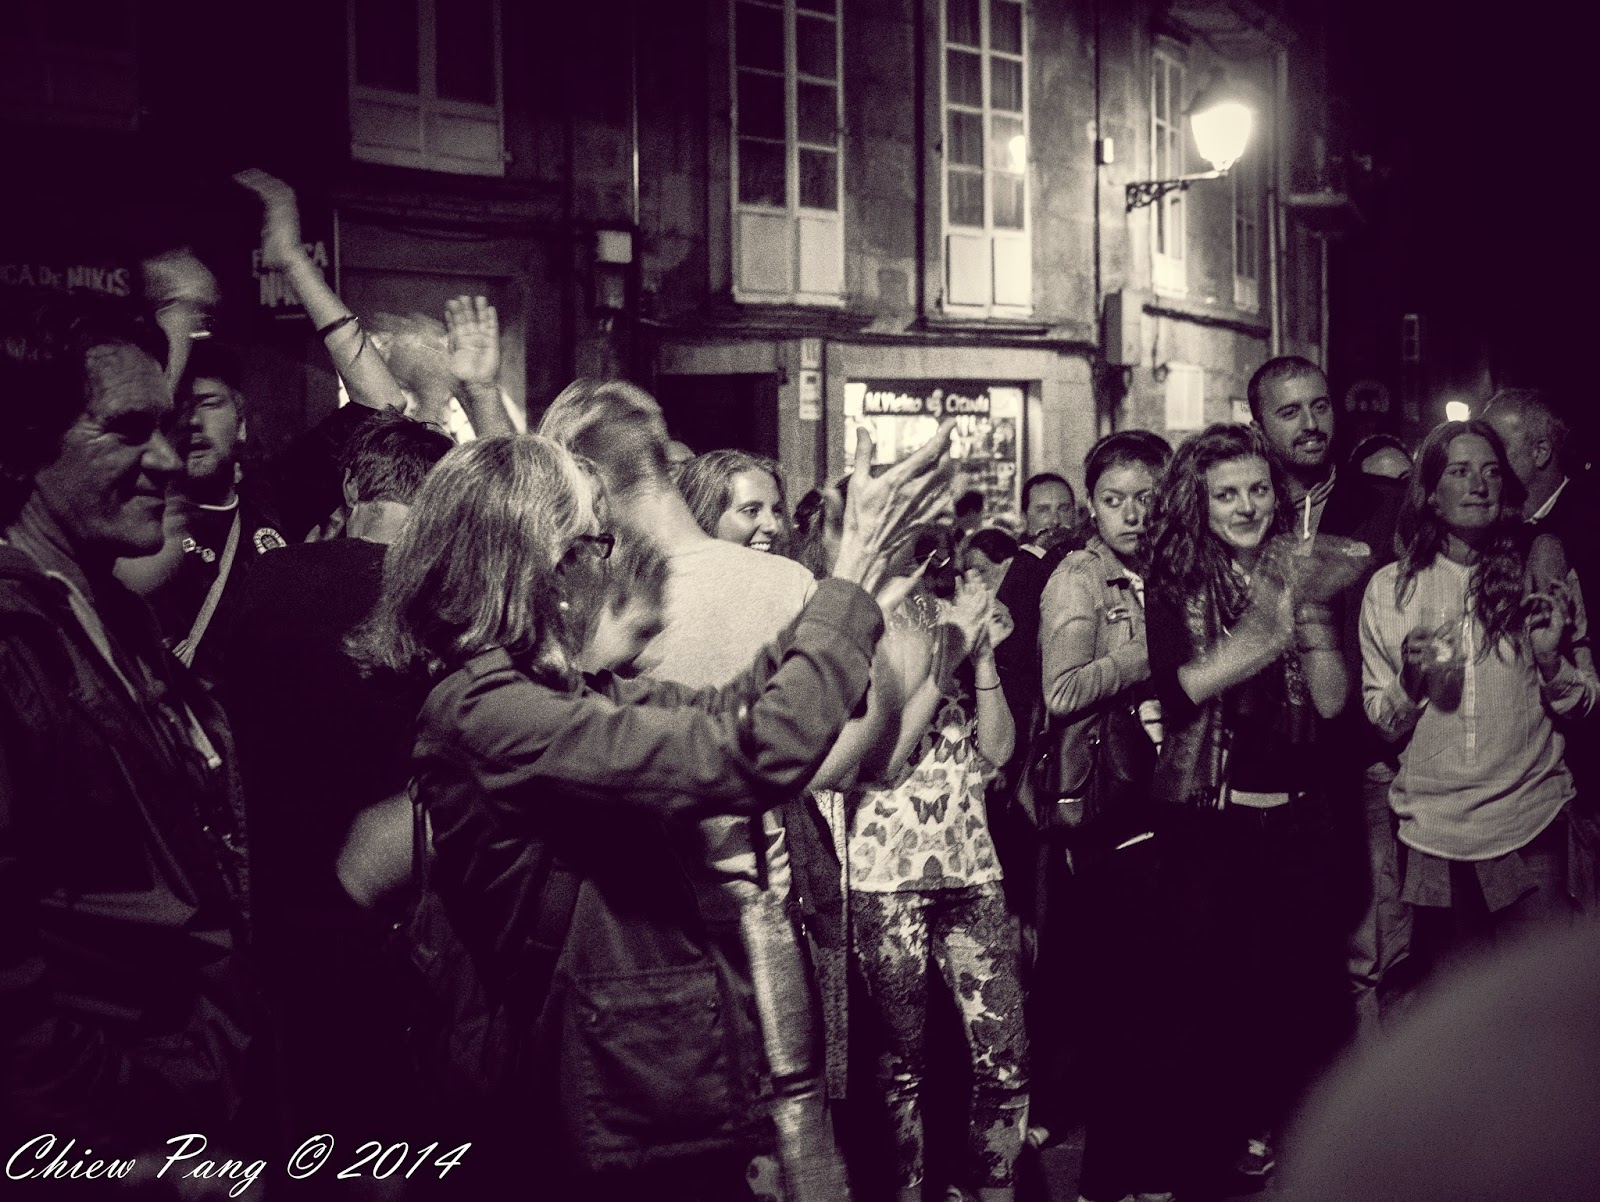 Free music in the streets of Santiago de Compostela